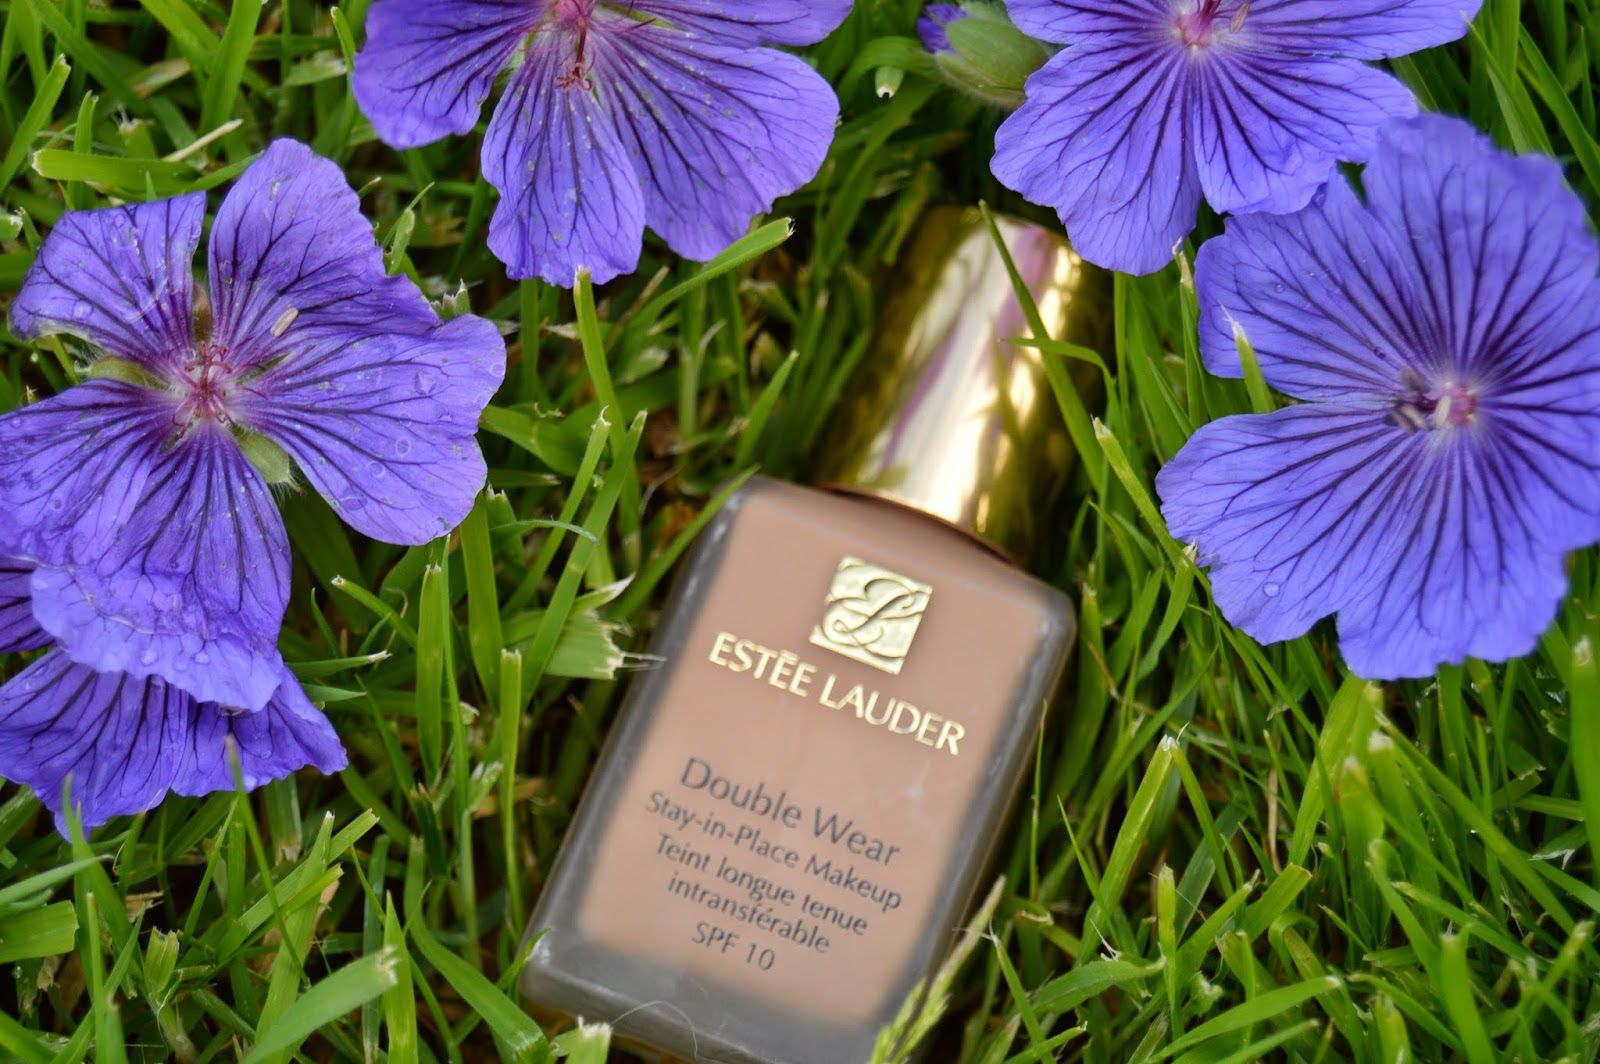 Frances Hurley | Fashion, Beauty &Lifestyle: Esteè Lauder Stay In Place Double Wear